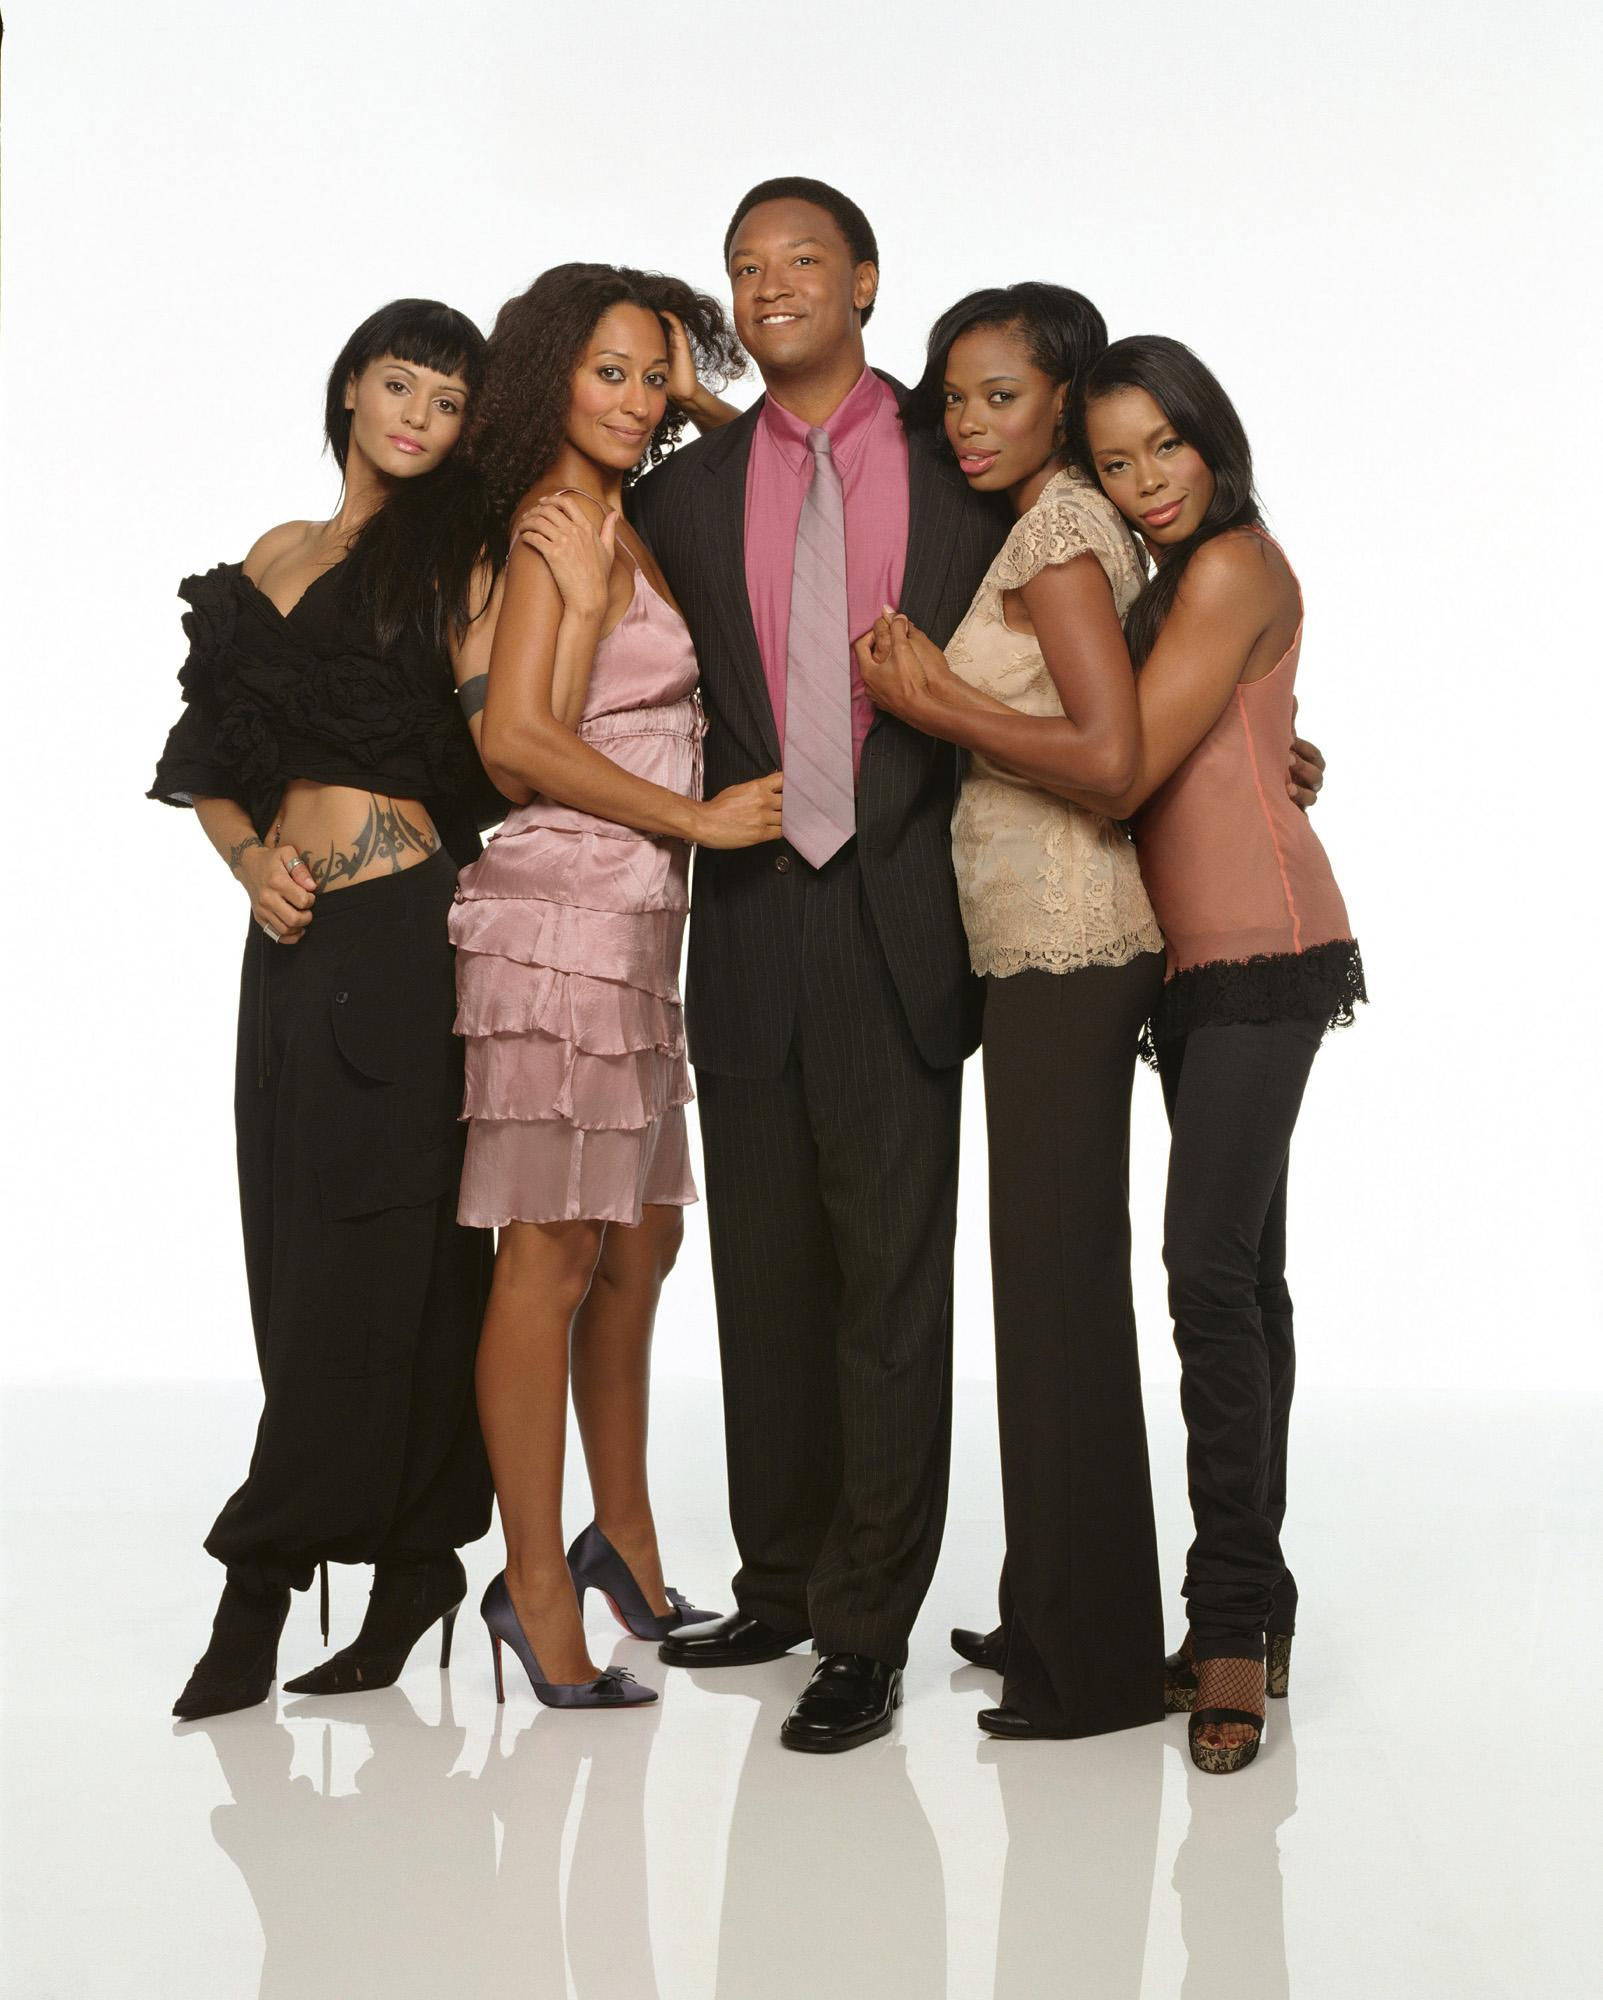 'Those were pretty awful years': 'Girlfriends' star Reggie Hayes speaks out about hard times in racially biased Hollywood